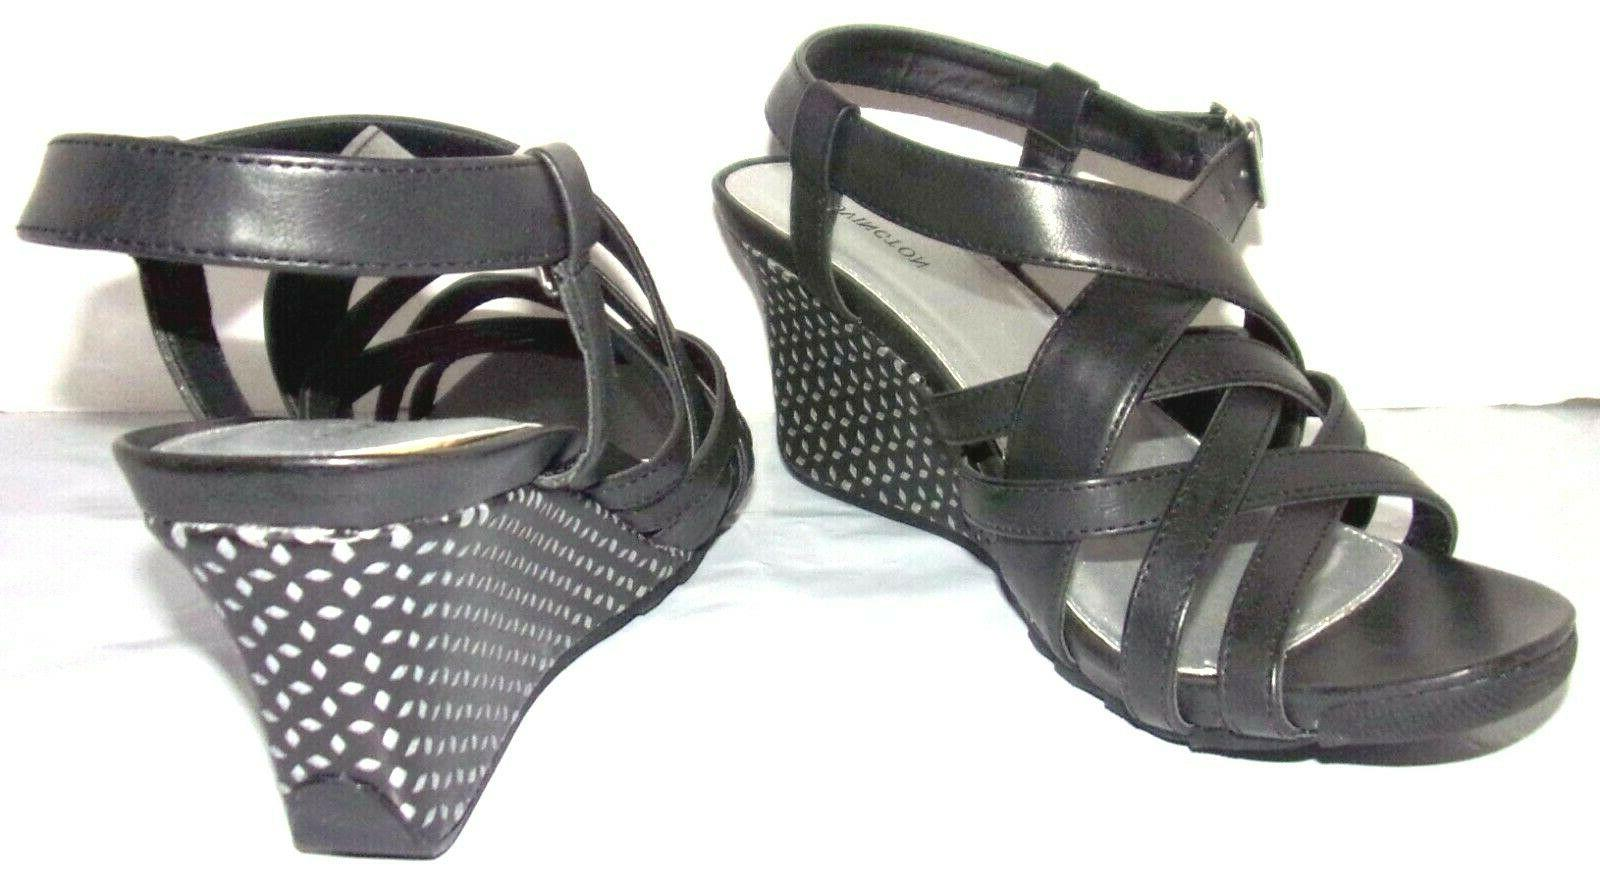 New CITYSCAPE WEDGE SANDALS W